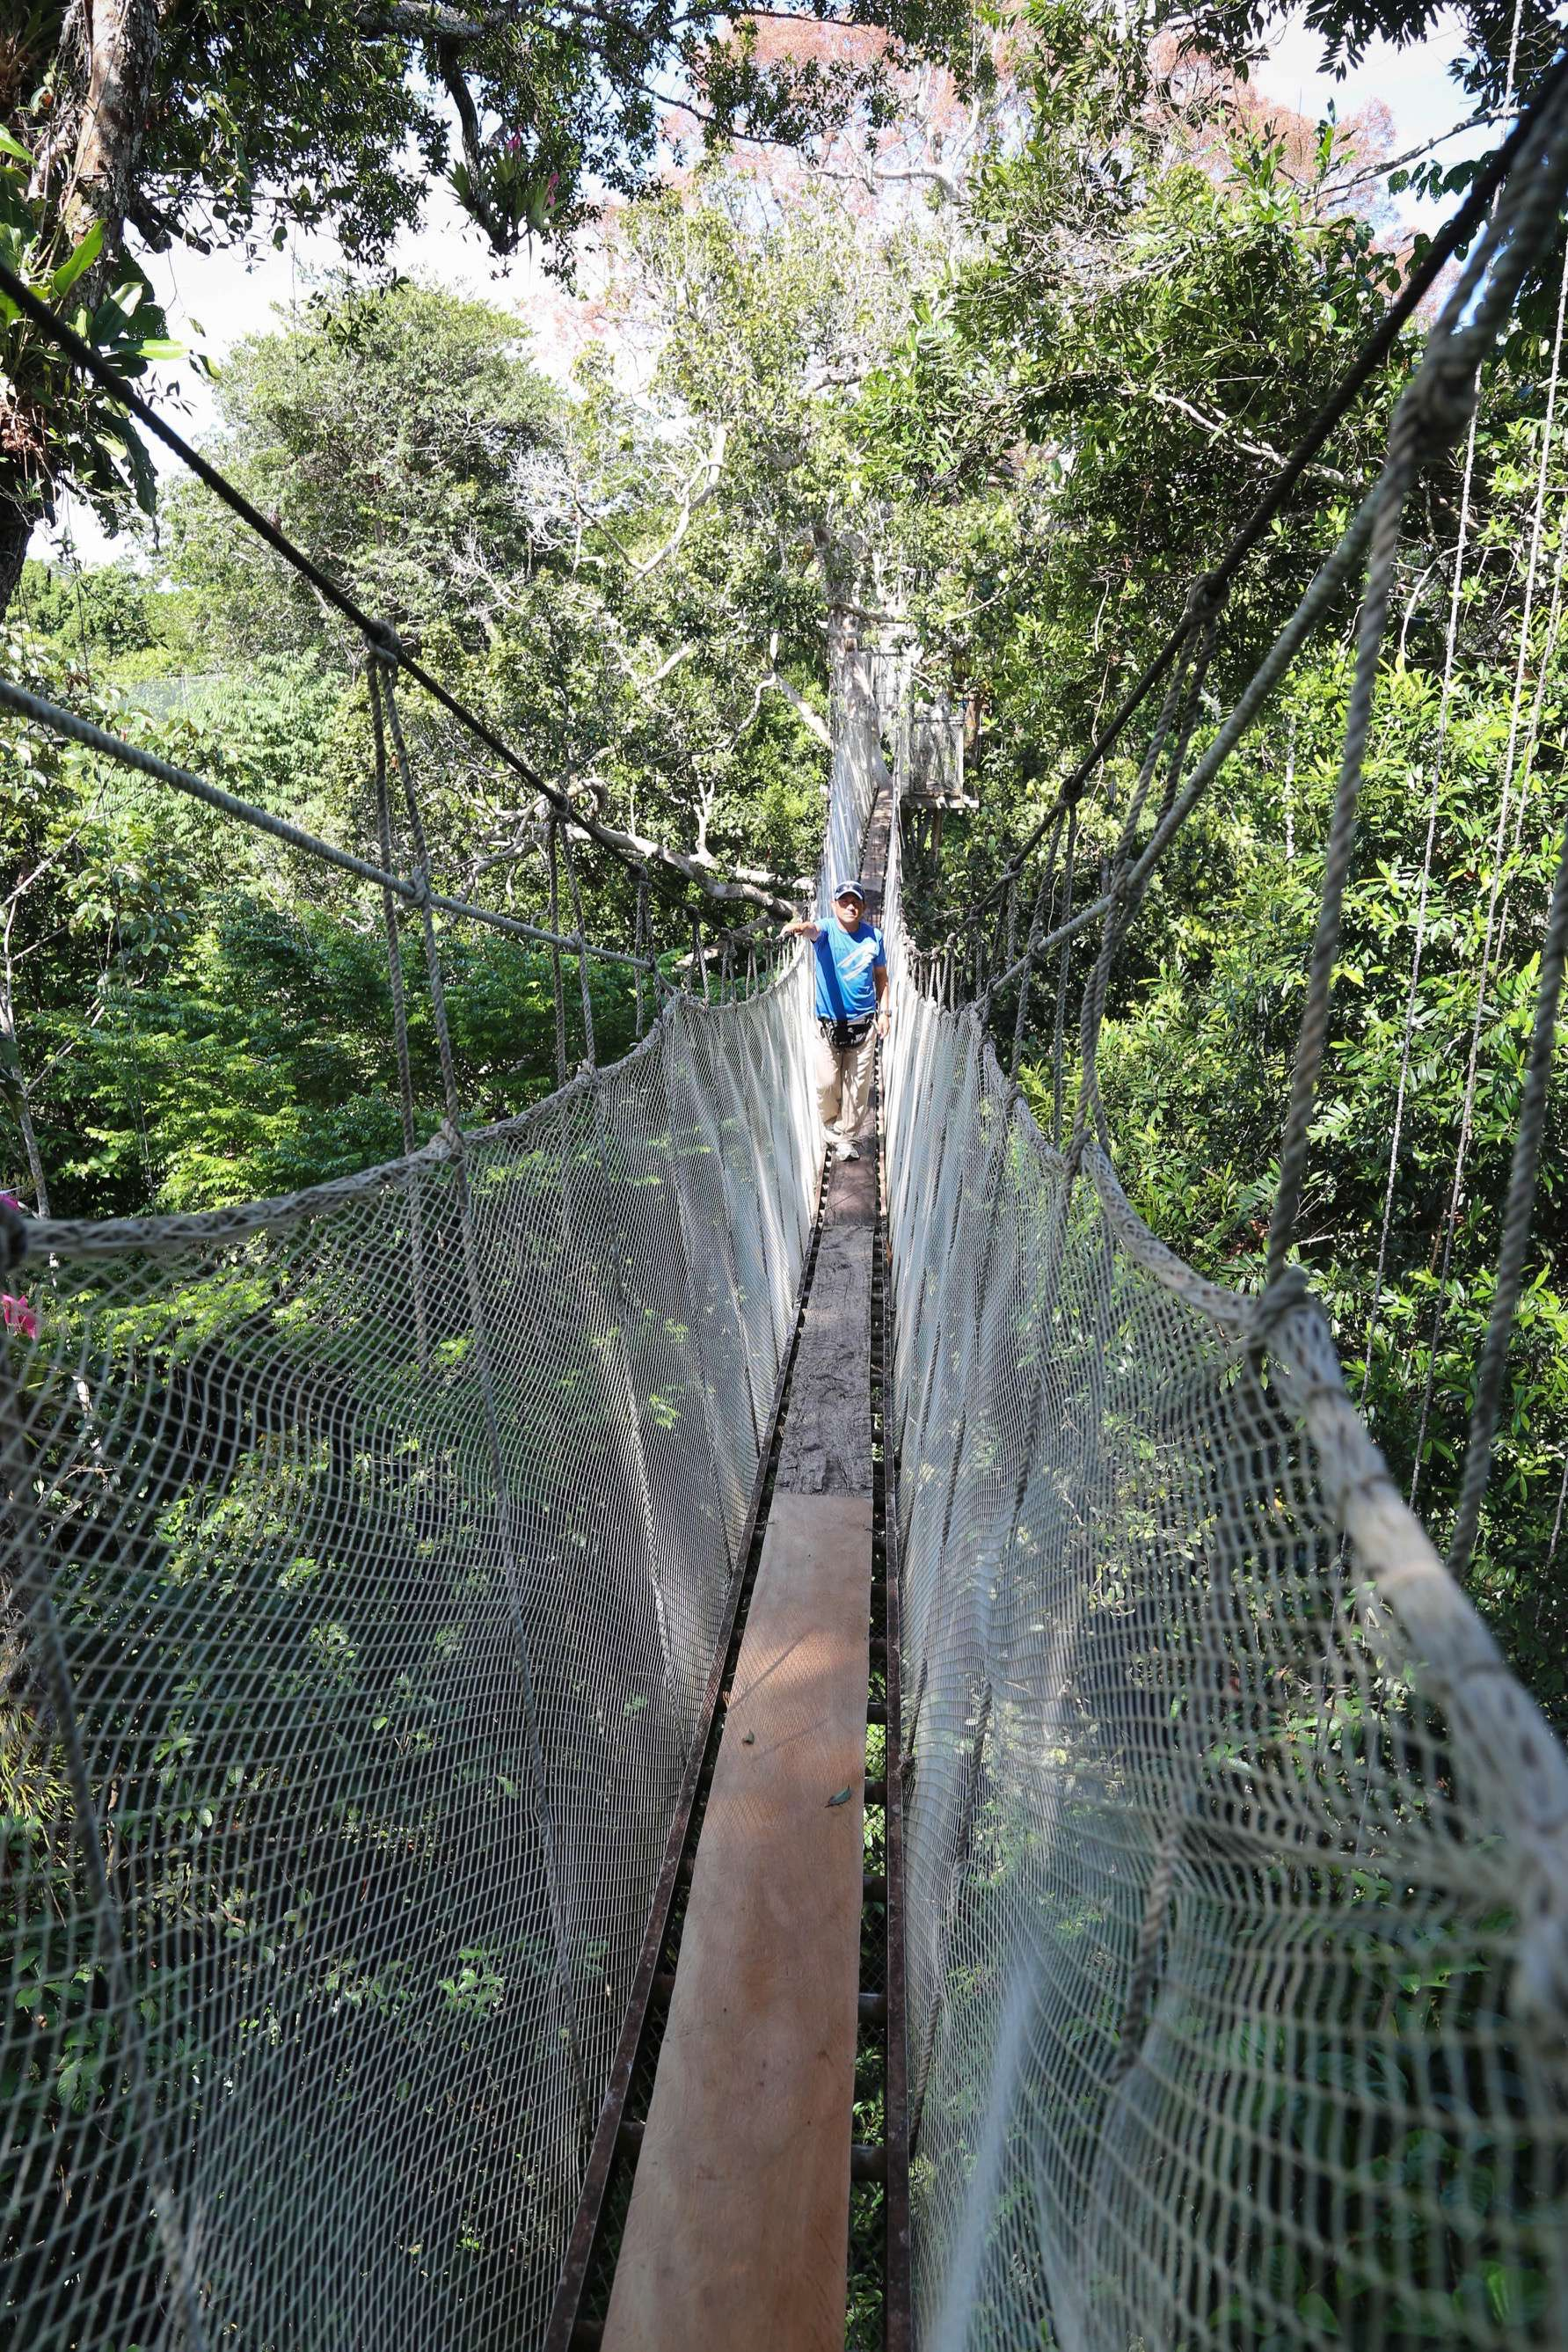 For guide Willie Flores Lanza, walking the canopy is almost an everyday experience. For others, it's a once-in-a-lifetime event.